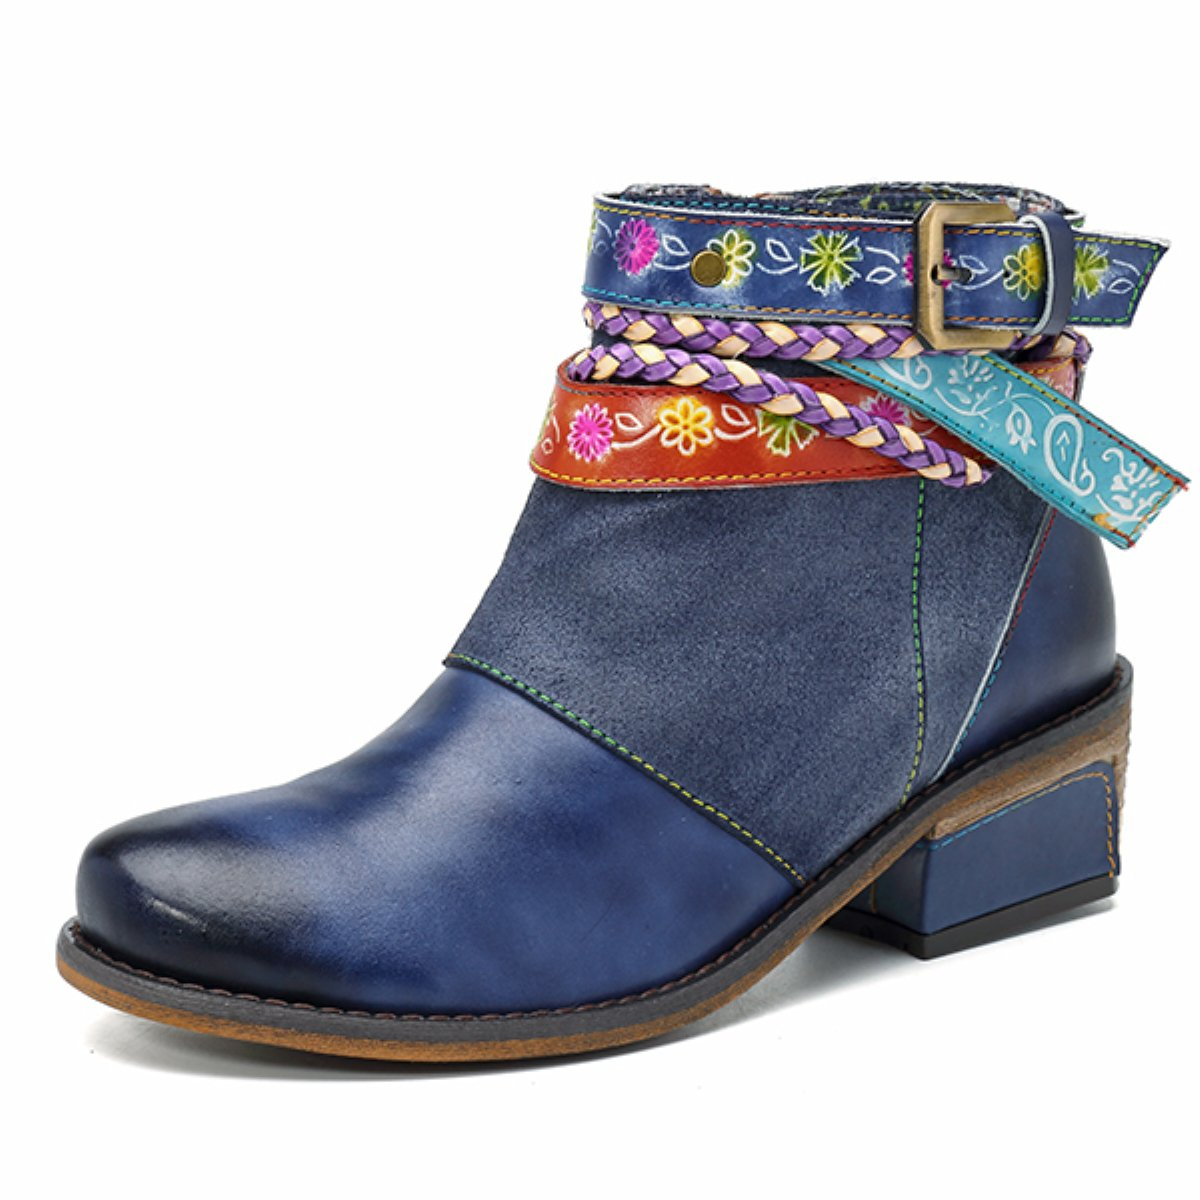 US Women's Bohemian Color Splicing Pattern Side Zipper Ankle Leather Boots Blue 8 B Womens Bohemian Color Splicing Pattern Side Zipper Ankle Leather Boots Blue 8 B M M US SOCOFYWERTY6735 socofy Block Heel Ankle Booties